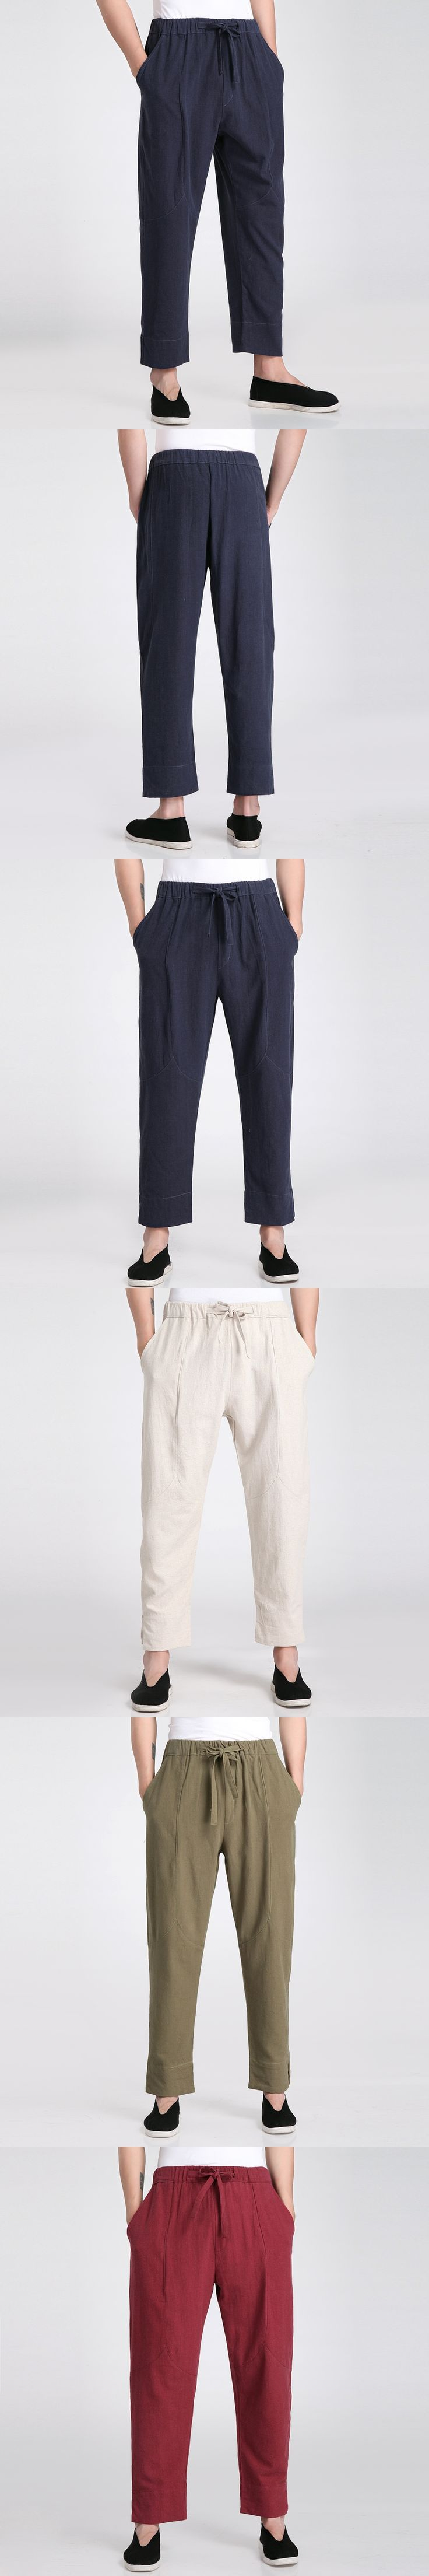 New Arrival Chinese Men's Cotton Linen Kung Fu Pant Vintage Casual Loose Trousers Clothing M L XL XXL XXXL 2606